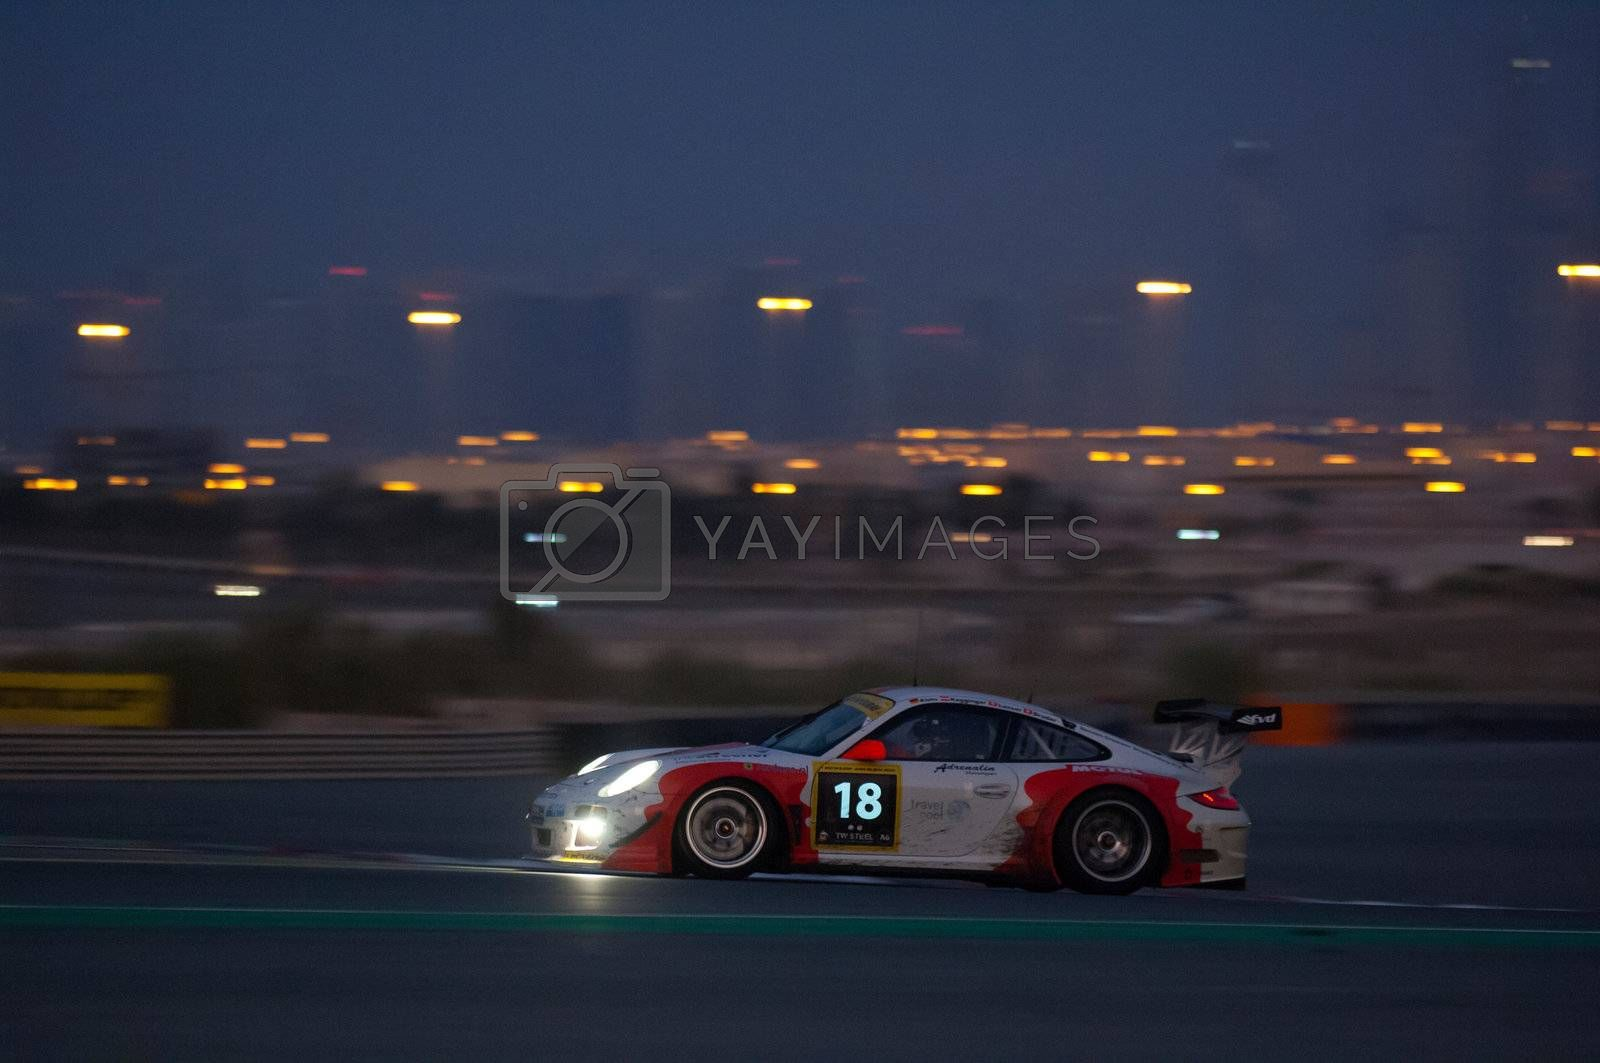 DUBAI - JANUARY 14: Car 18, a Porsche 997 GT3 R, early in the morning during the 2012 Dunlop 24 Hour Race at Dubai Autodrome on January 14, 2012.